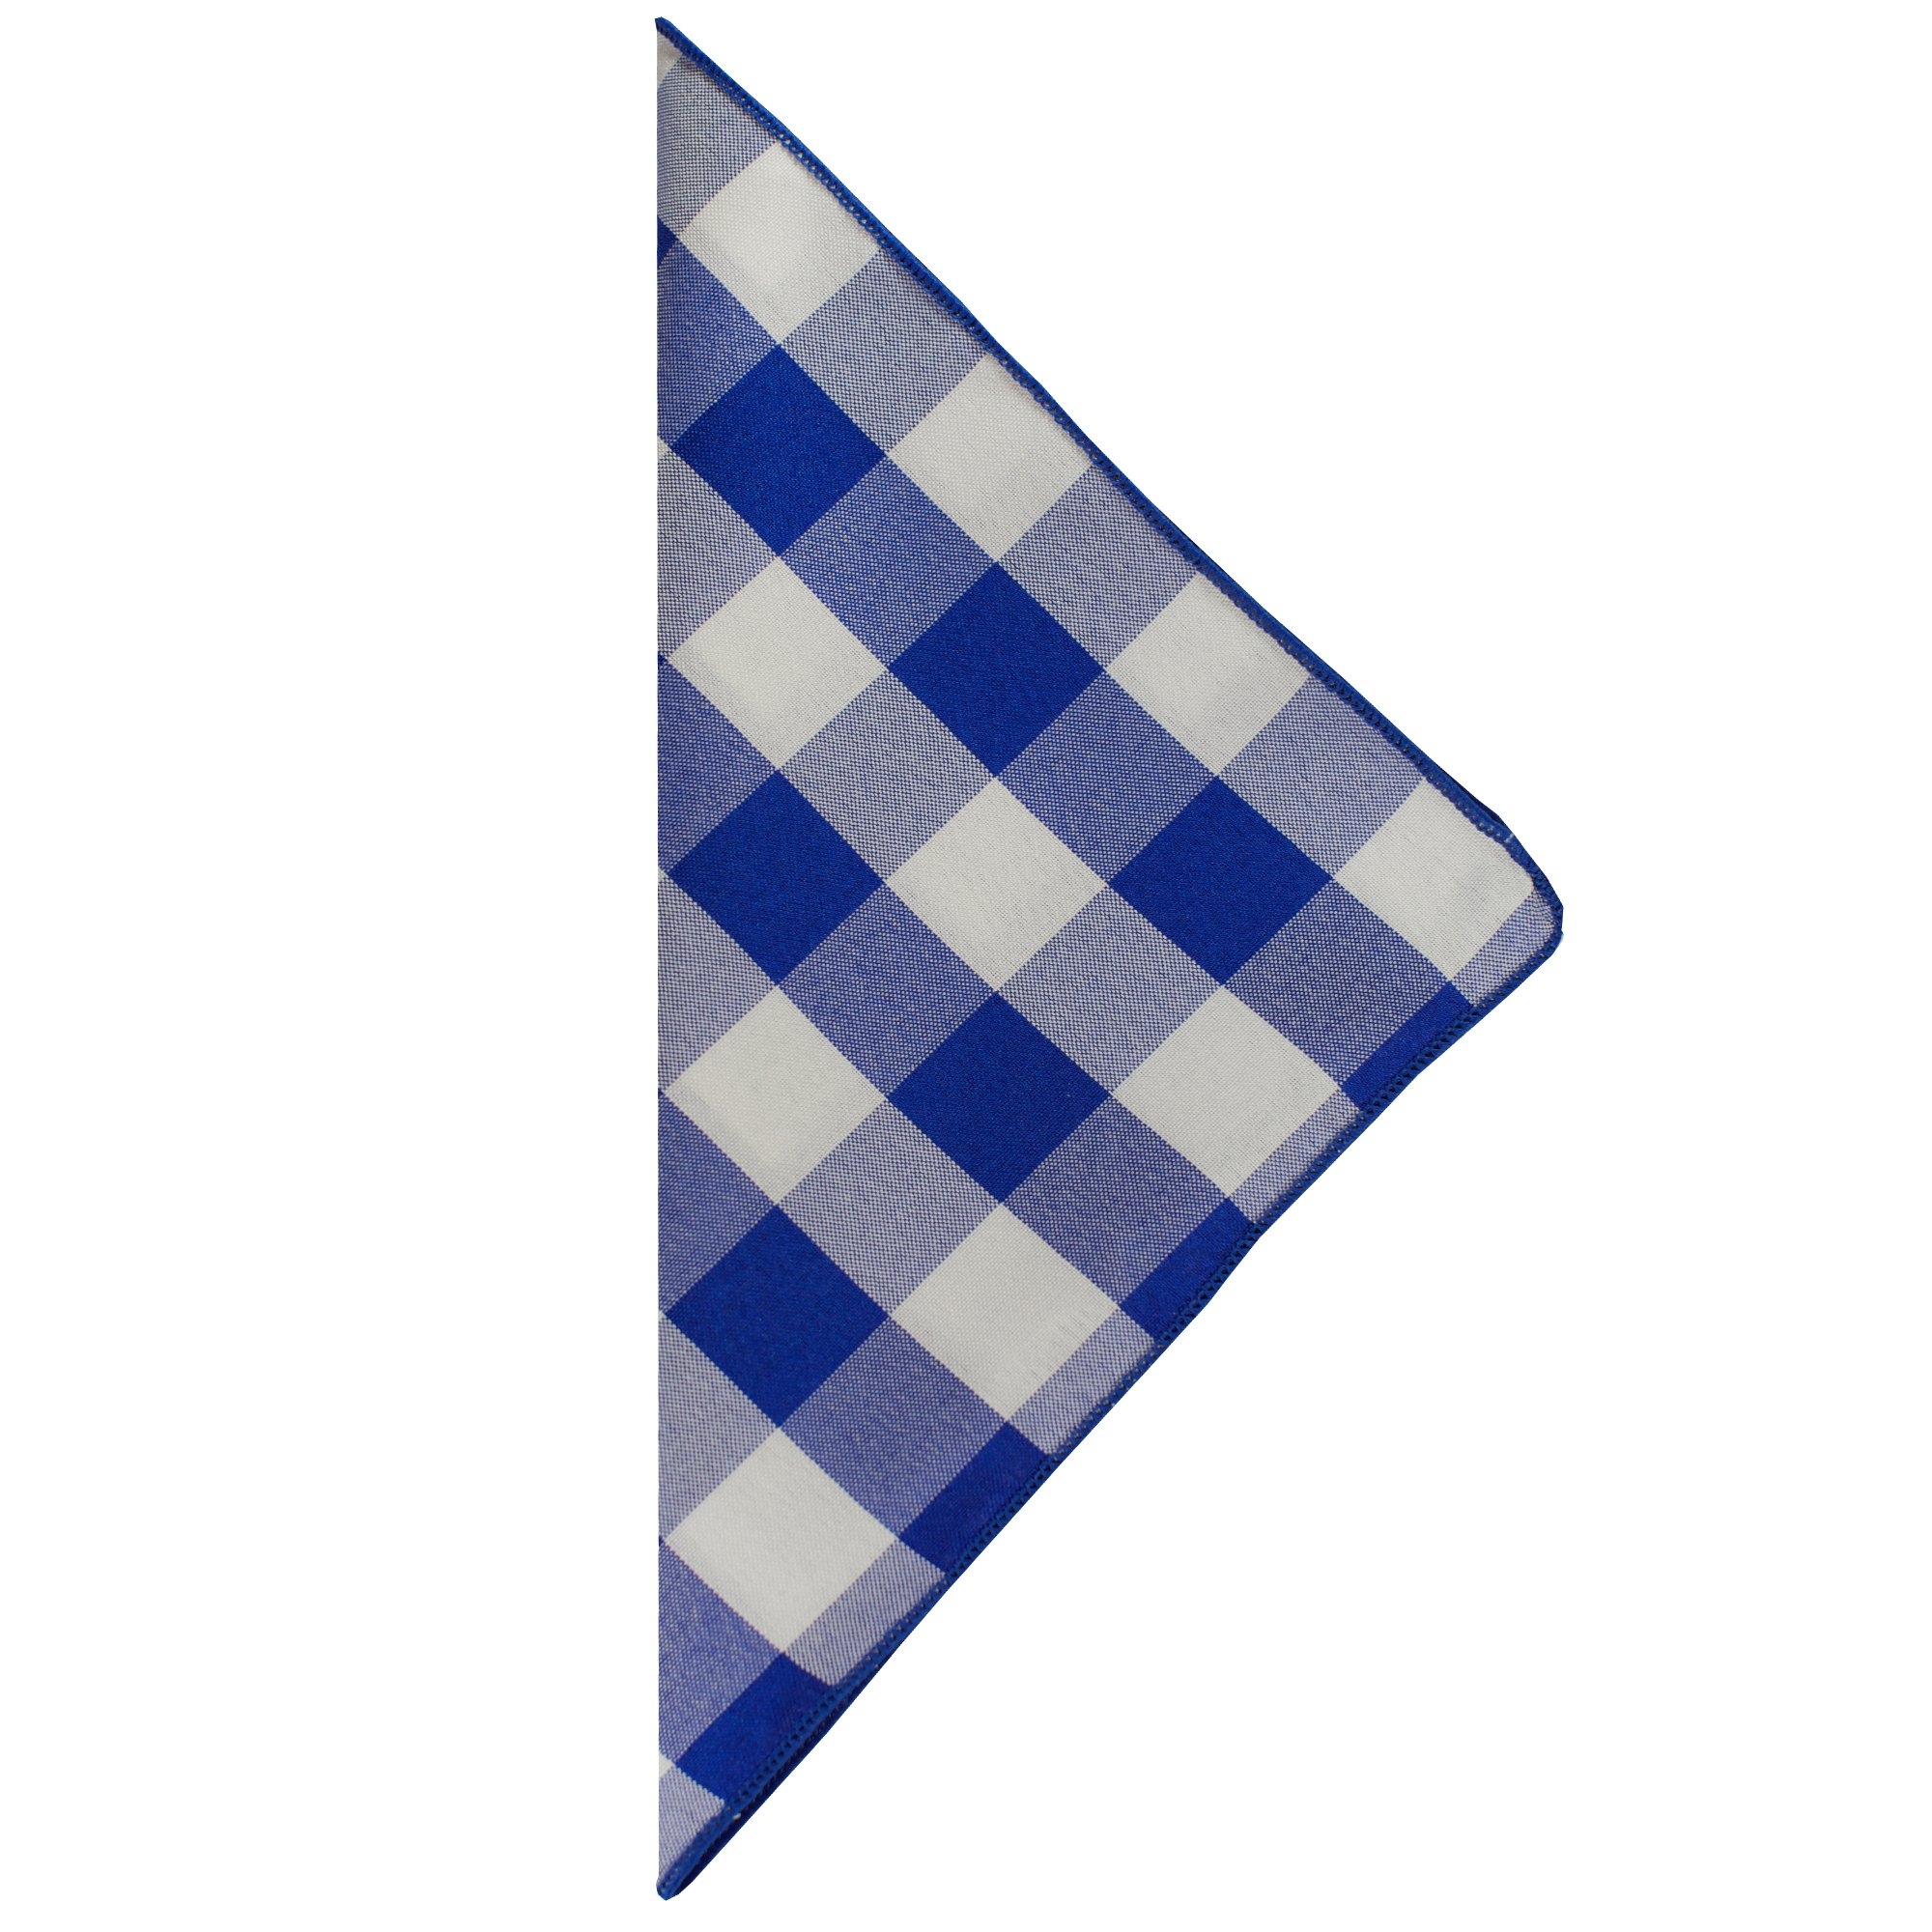 Ultimate Textile -10 Dozen- 10 x 10-Inch Polyester Checkered Cloth Cocktail Napkins, Royal and White